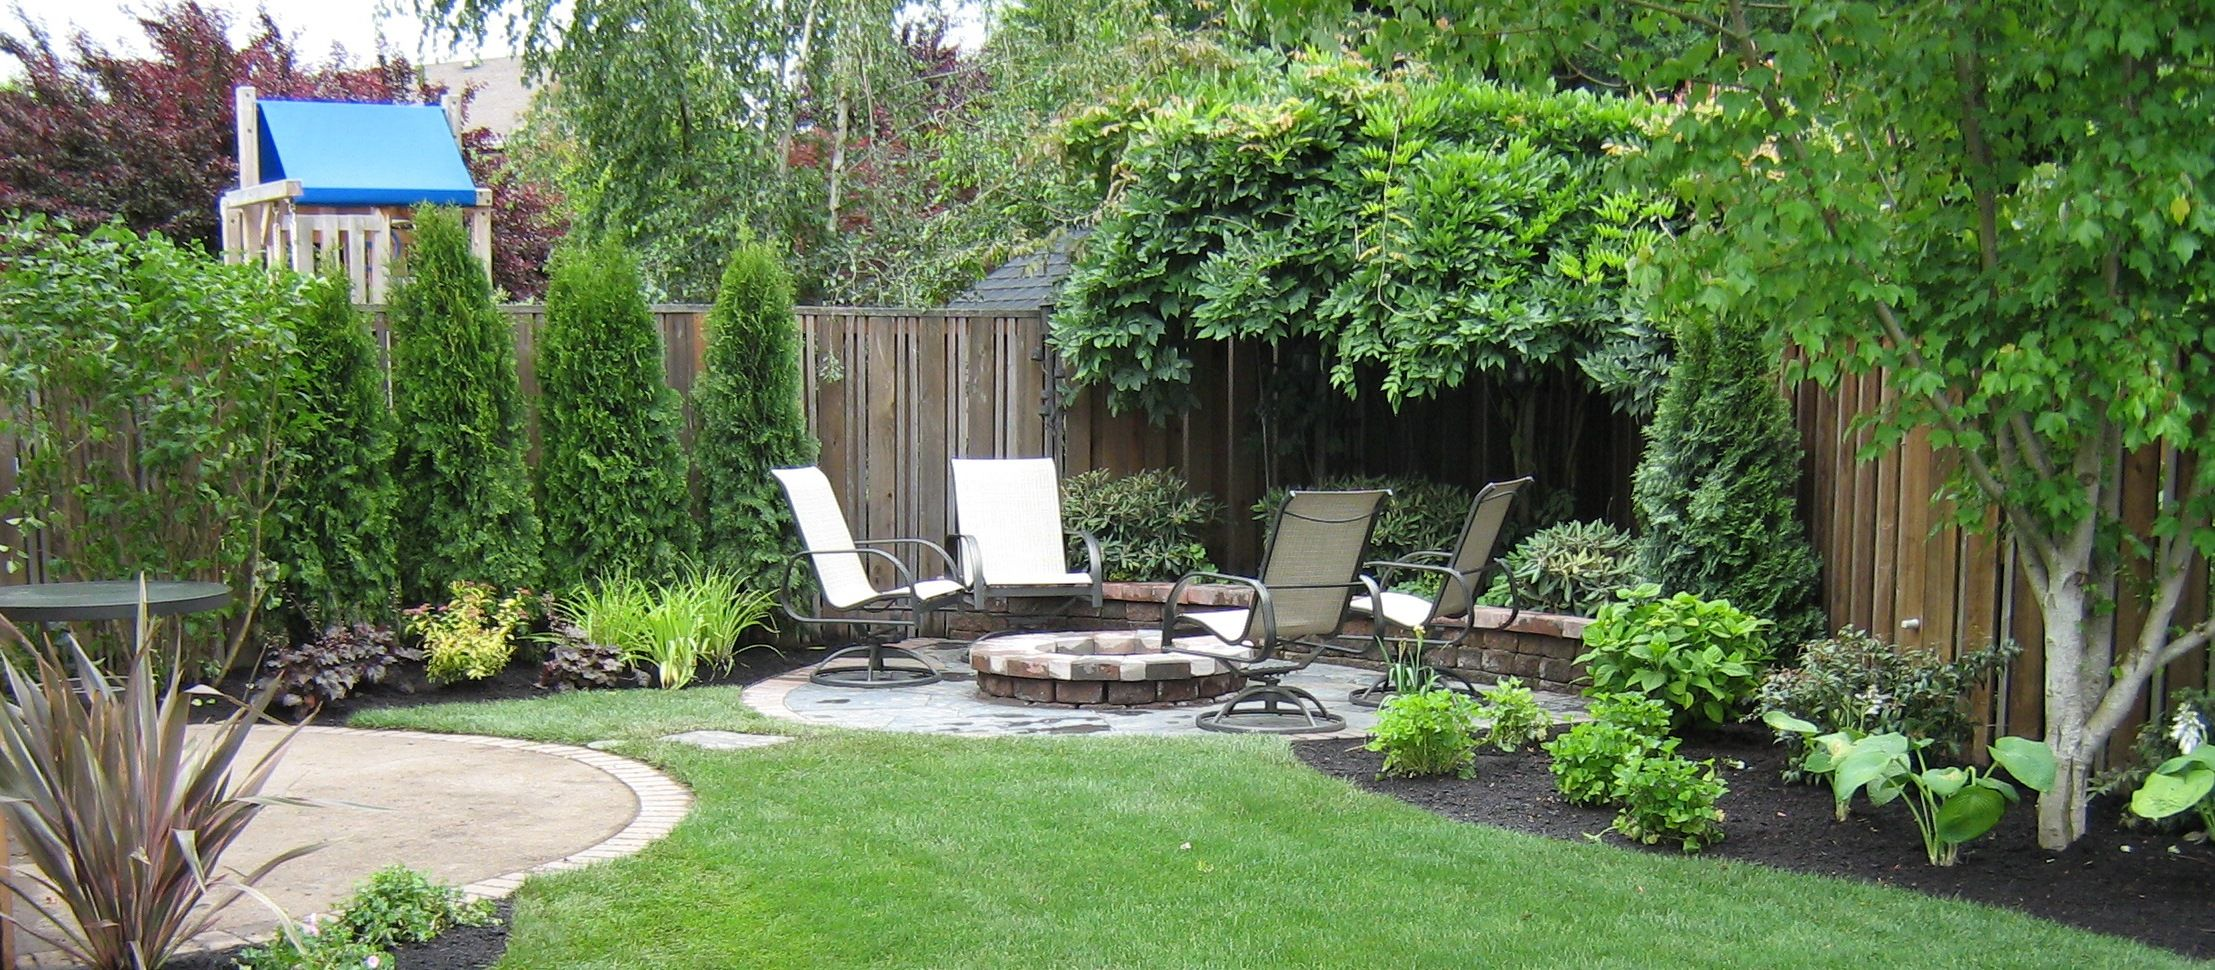 Small backyard landscaping ideas photos garden design for Garden design ideas ontario